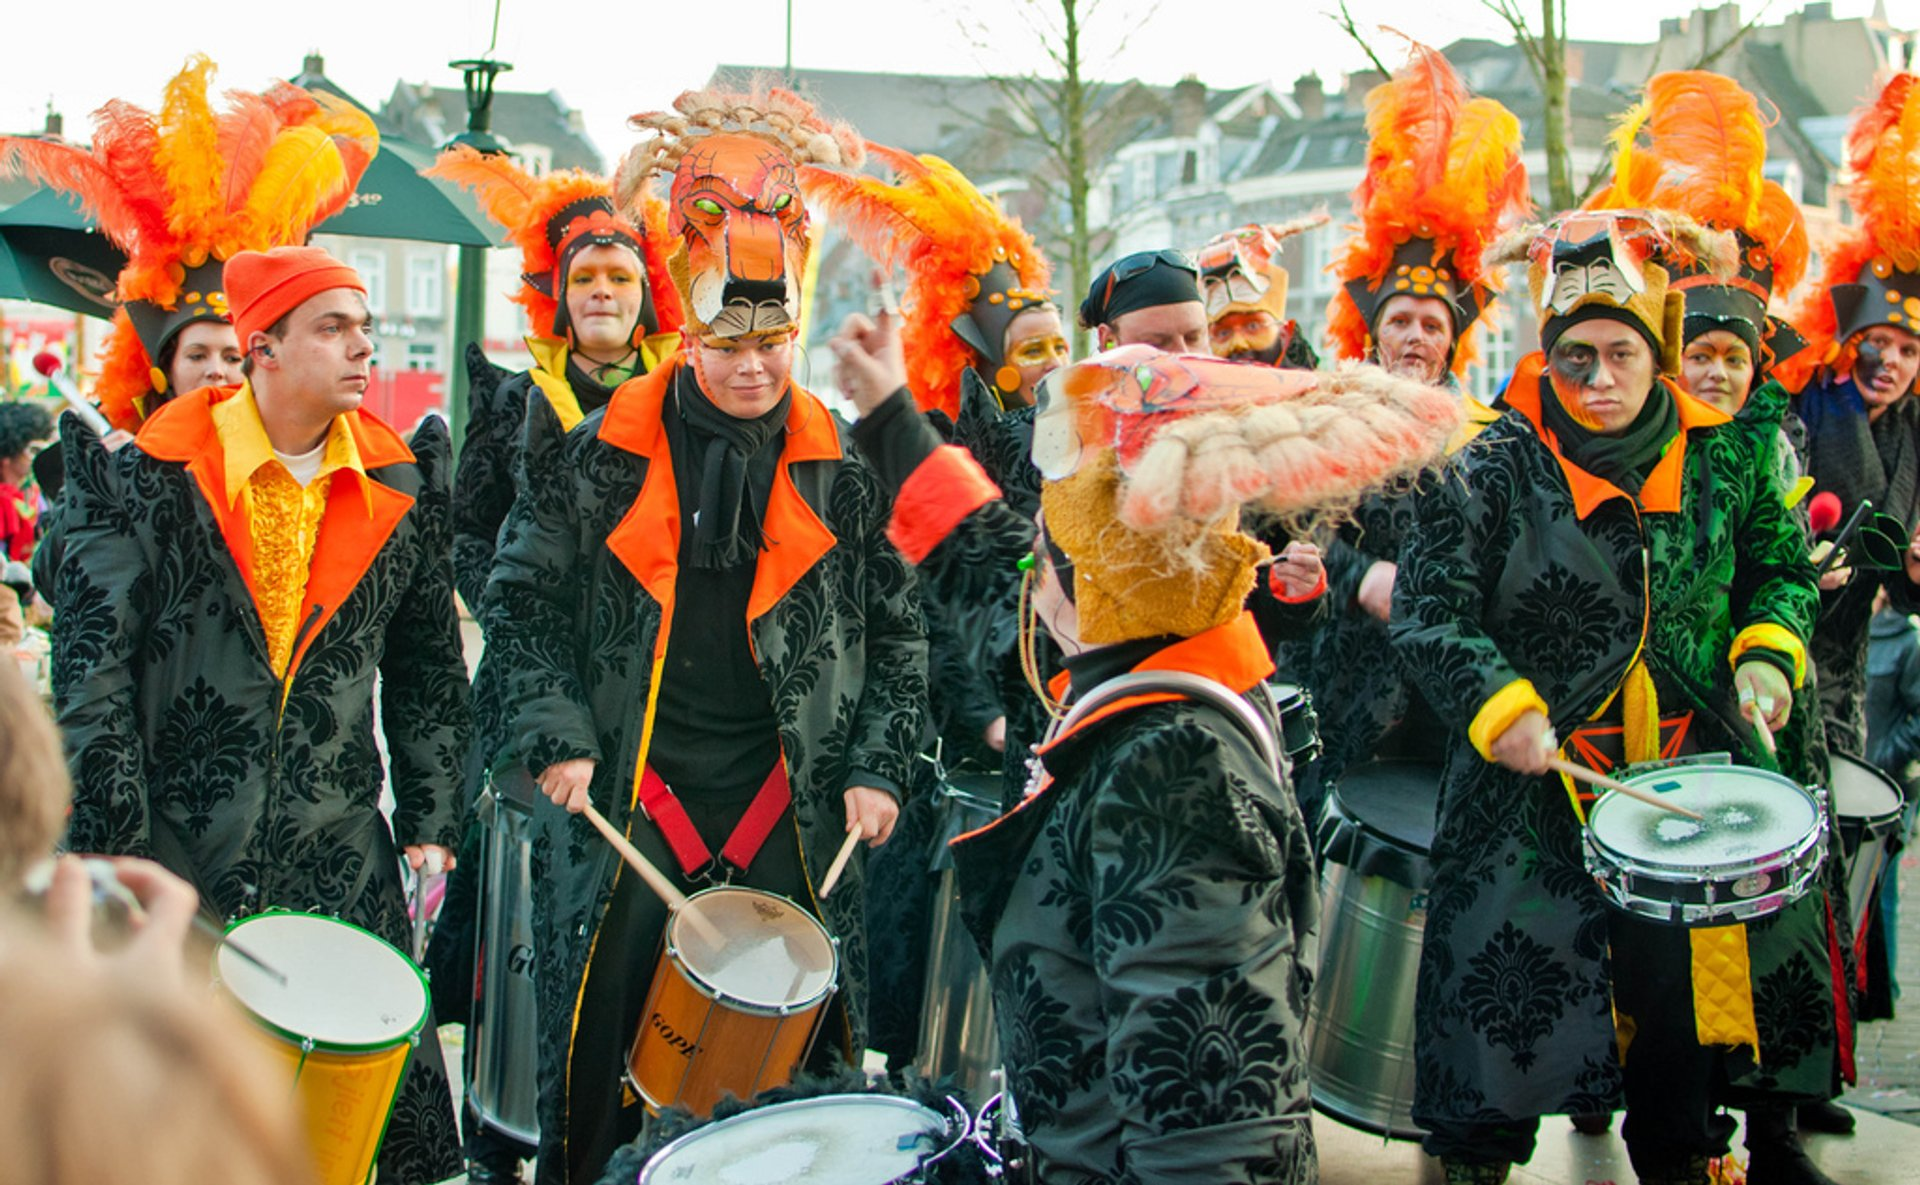 Dutch Carnival—Vastelaovend in The Netherlands 2020 - Best Time